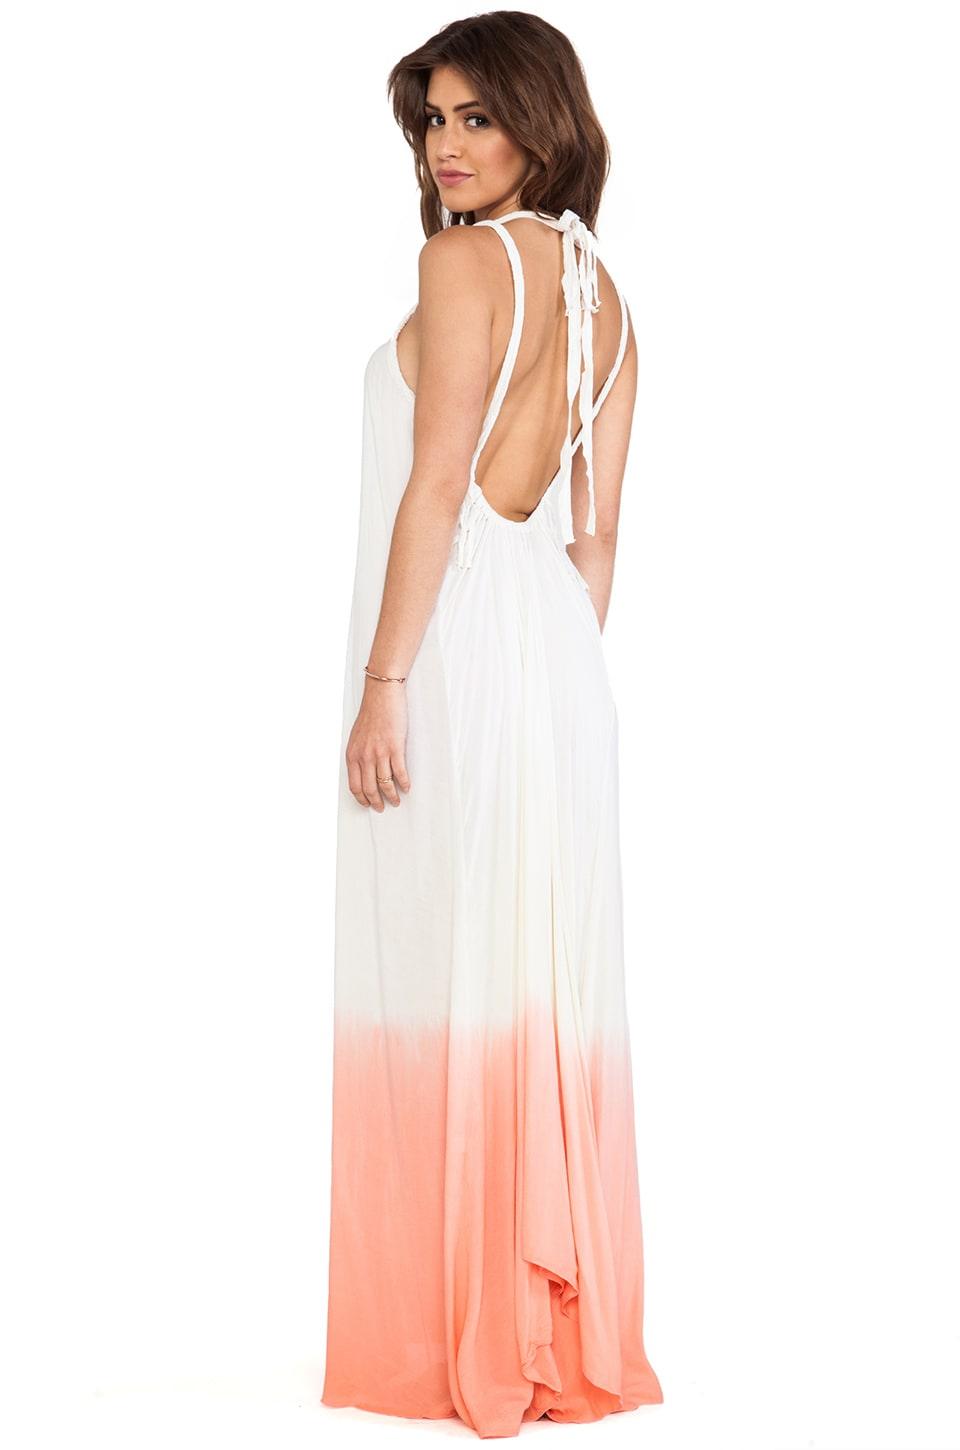 Tiare Hawaii Coco Low Scoop Back Maxi Dress in Coral Cream Ombre